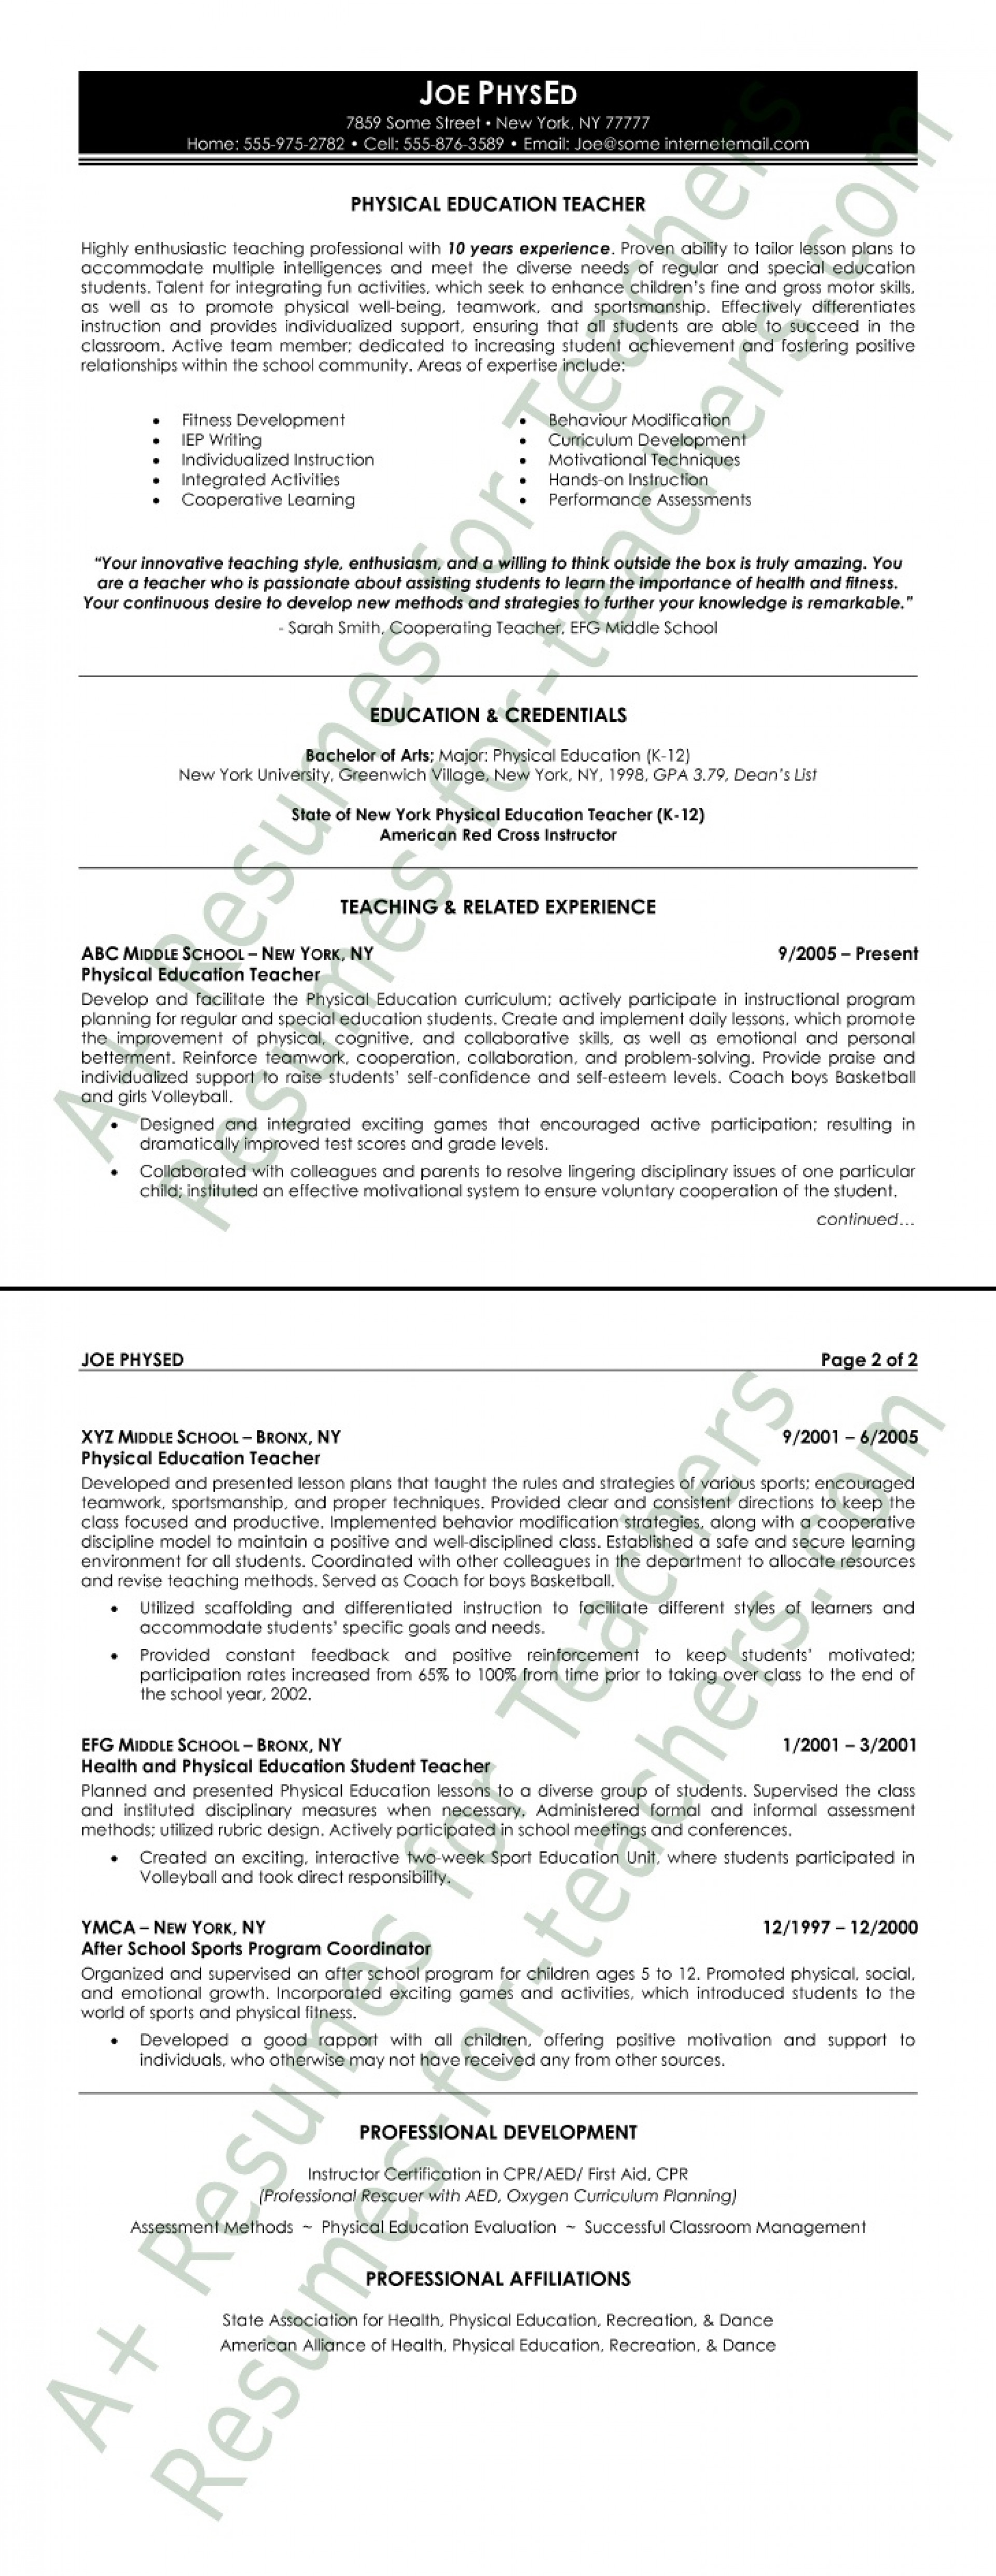 007 Physical Education Resume Sample Studymode Word Essay On Accountability In The Army Formidable 1000 Importance Of 1920